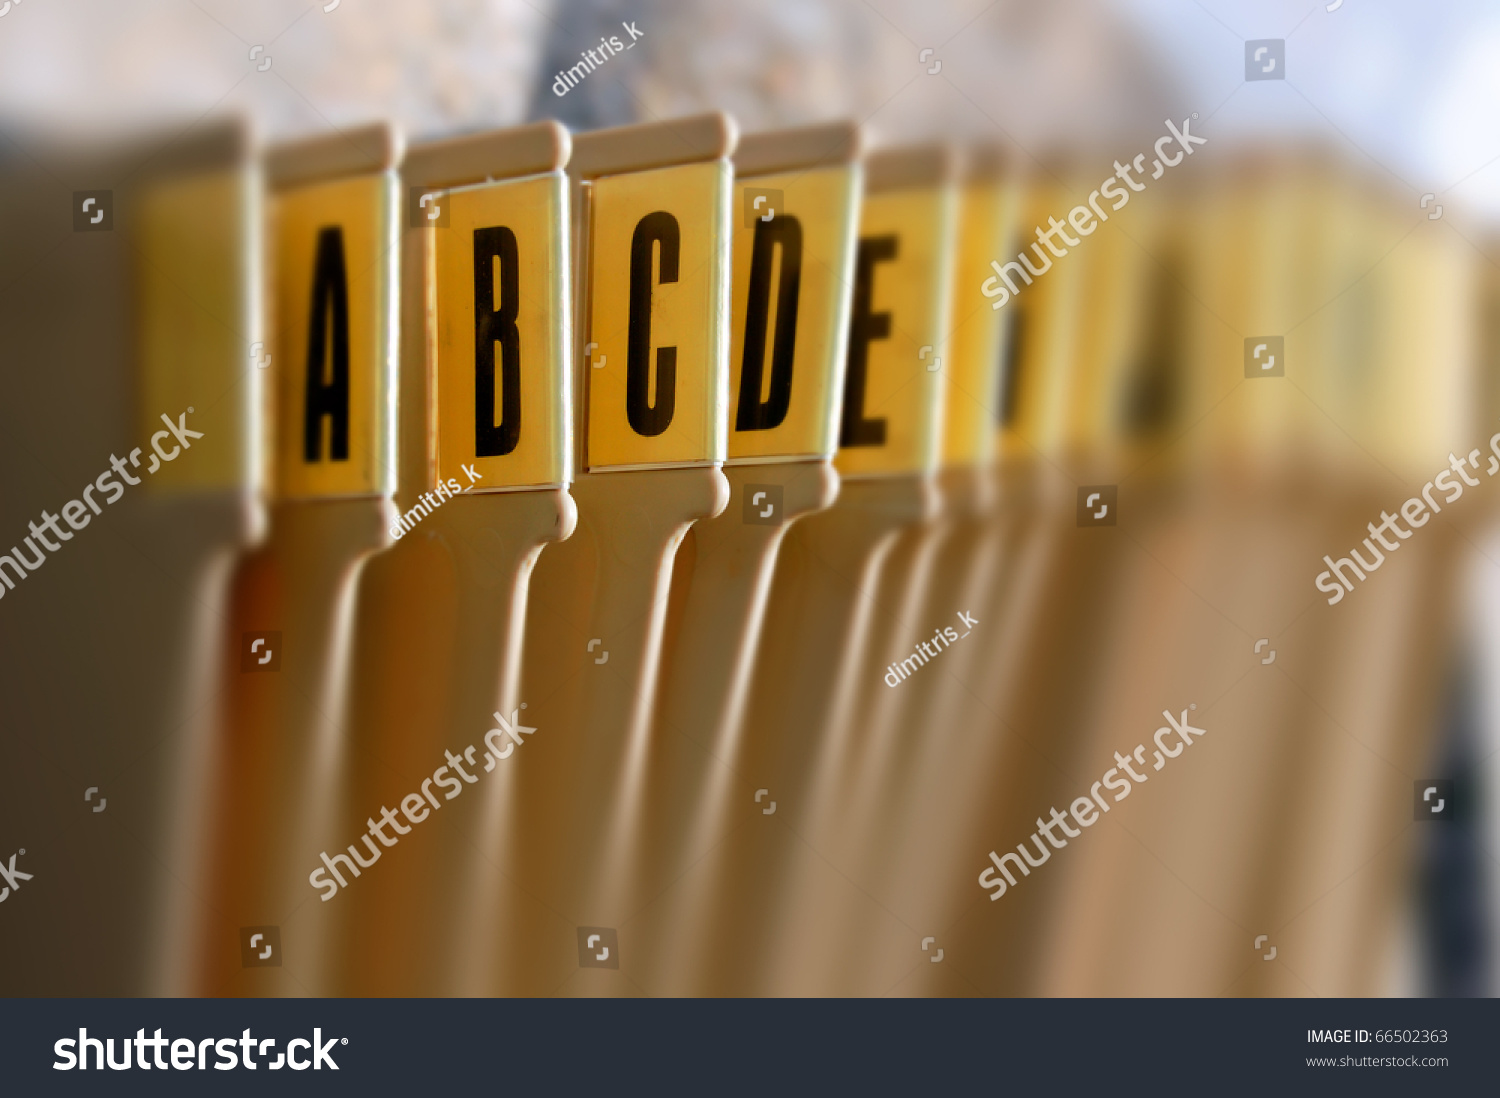 Alphabetical Filing Tray Index Office Documents Stock Photo ...